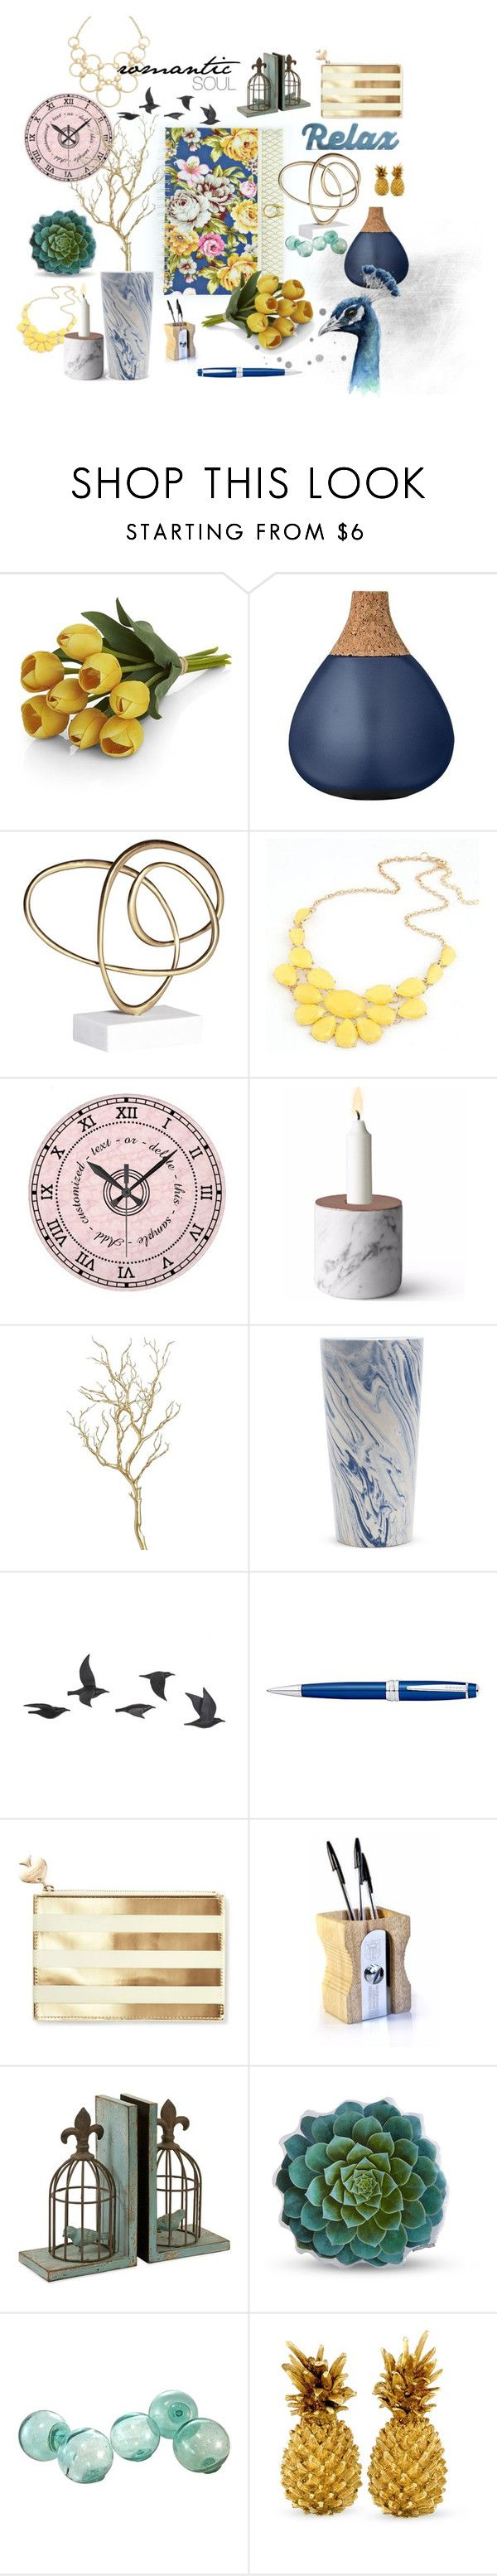 """Romantic soul"" by iwona-estera on Polyvore featuring interior, interiors, interior design, home, home decor, interior decorating, Crate and Barrel, Bloomingville, BEA and Pier 1 Imports"